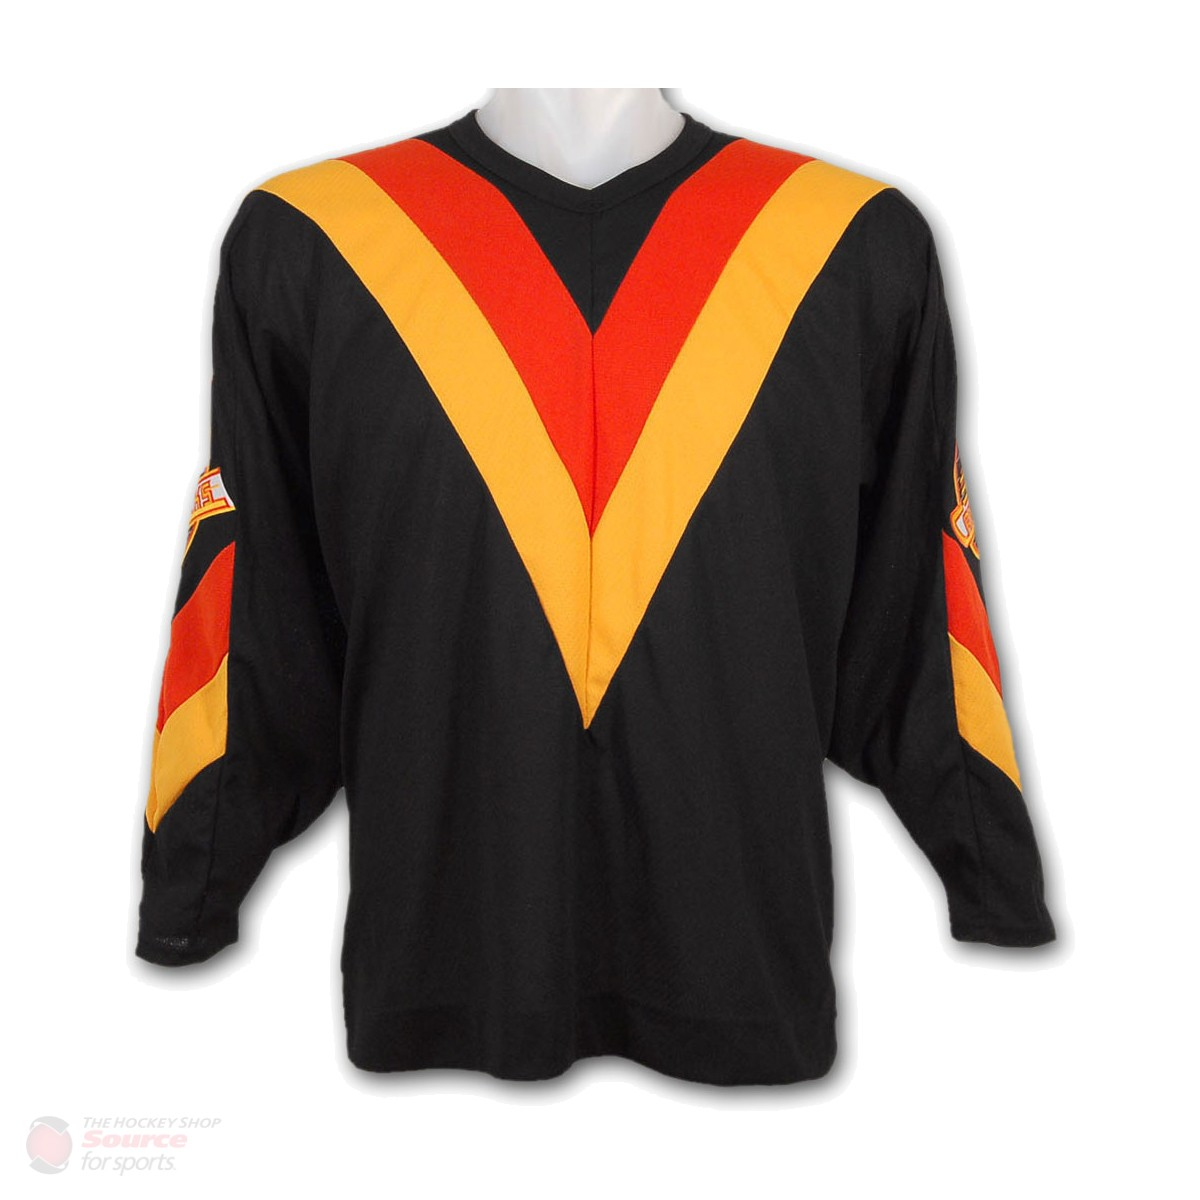 e646a7360 ... purchase which vancouver canucks jersey is the best playbuzz b960a 62ab0